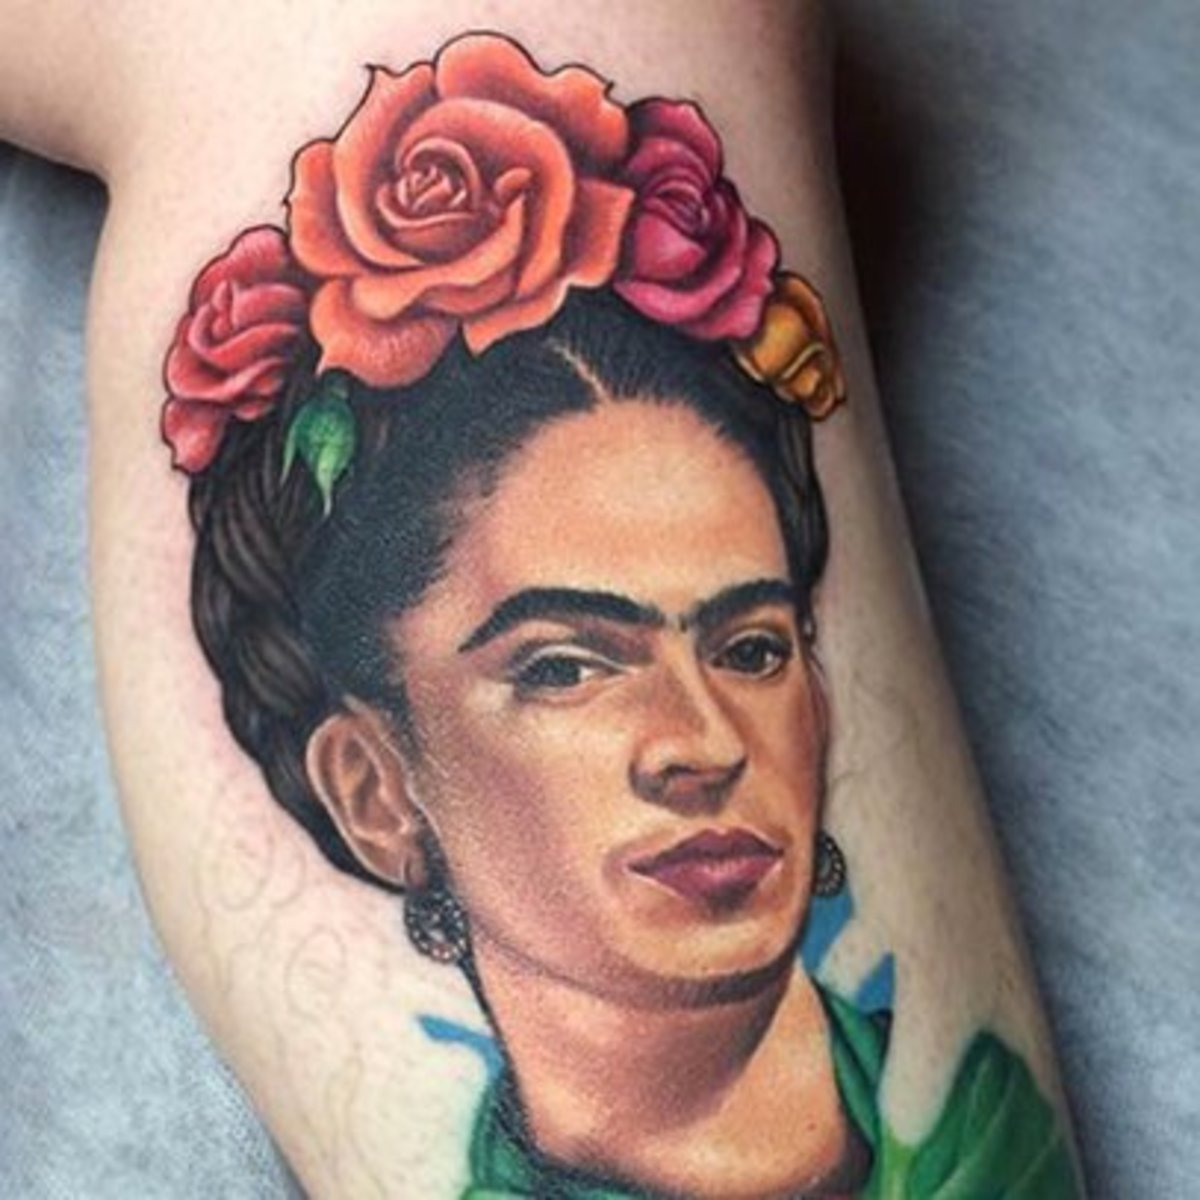 9b73be2df Tattoos Inspired by Frida Kahlo - Tattoo Ideas, Artists and Models